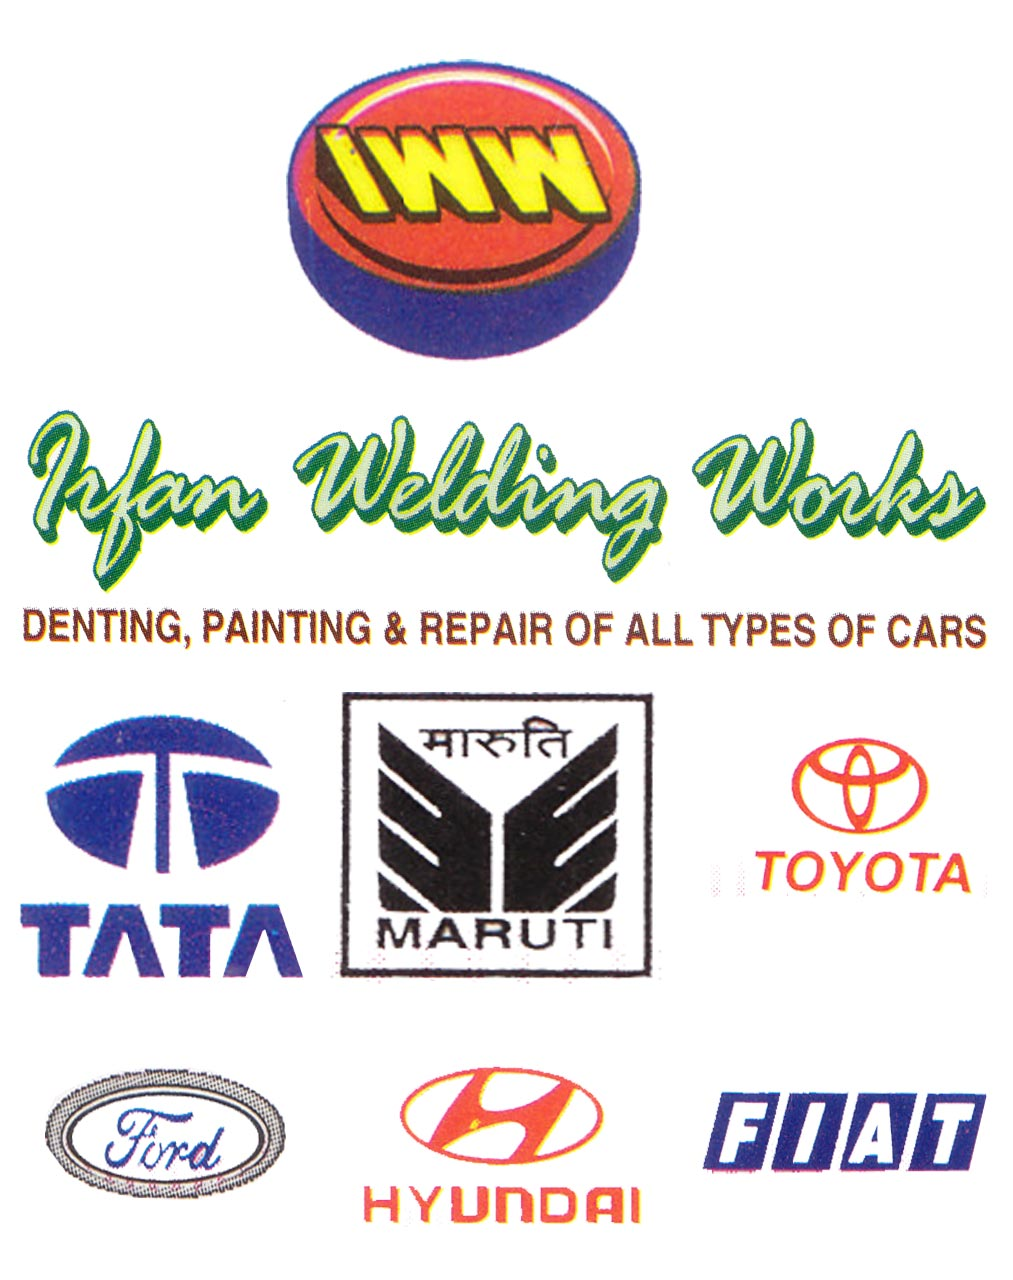 IRFAN WELDING WORKS